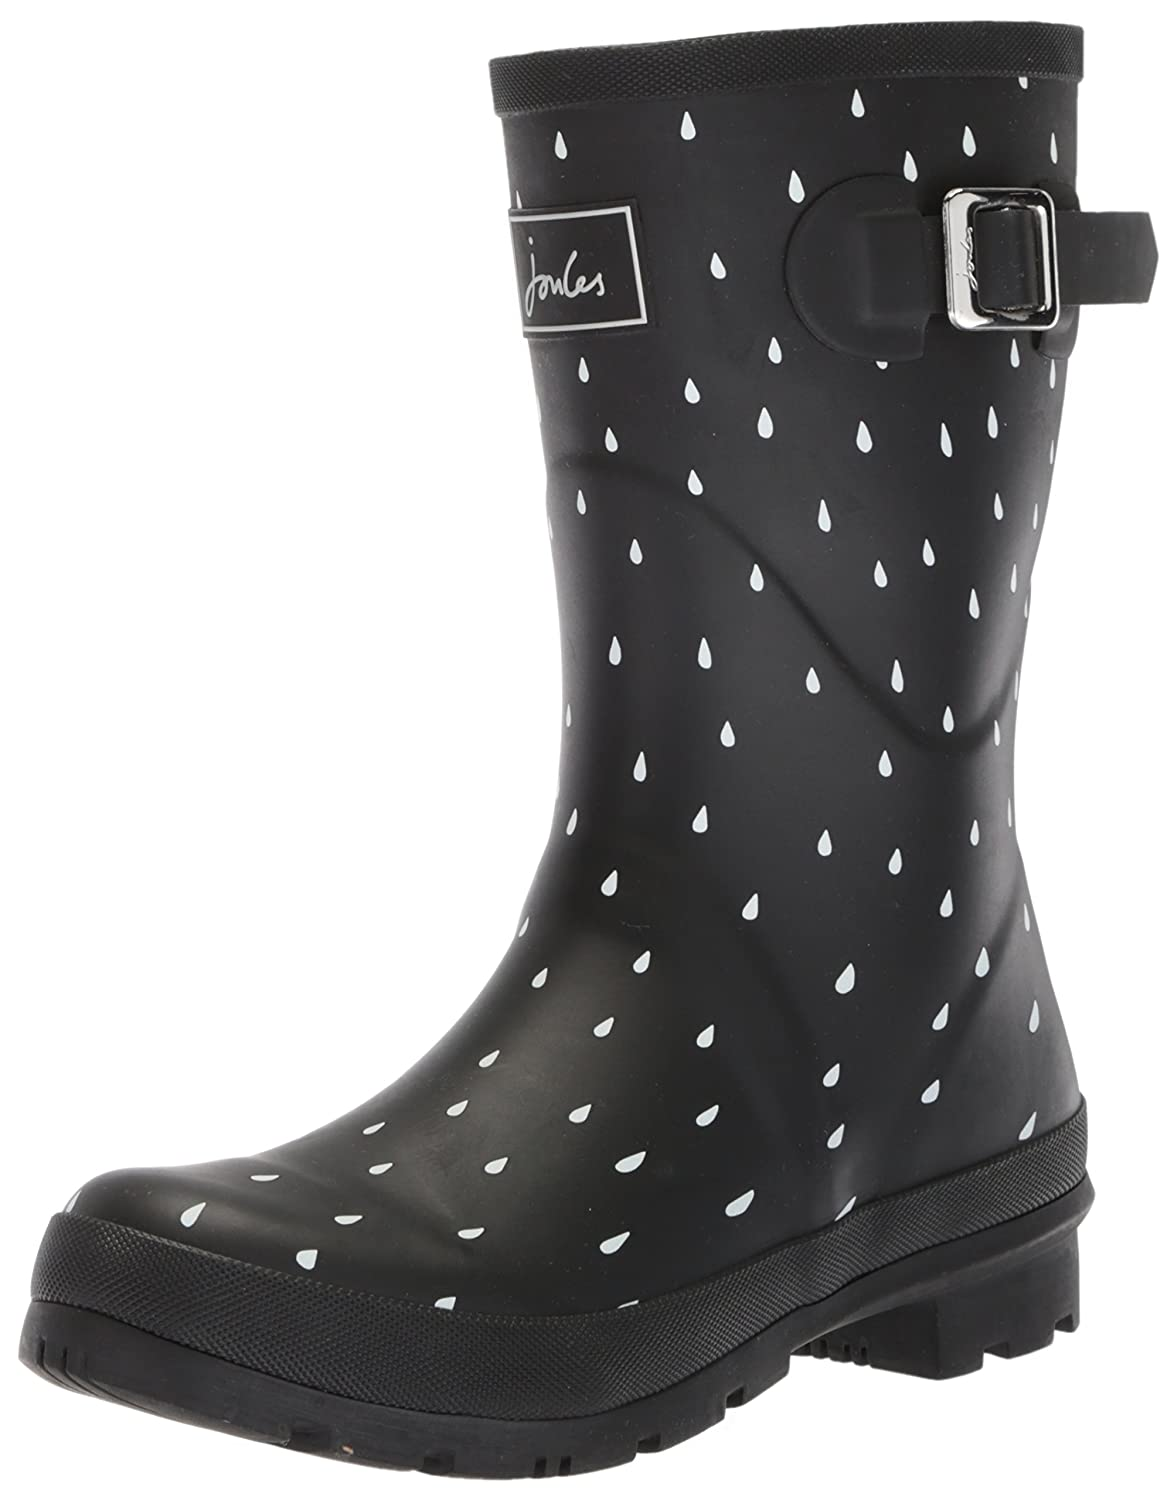 Joules Women's Mollywelly Rain Boot B073XJSZ8K 6 B(M) US|Blackraindrop